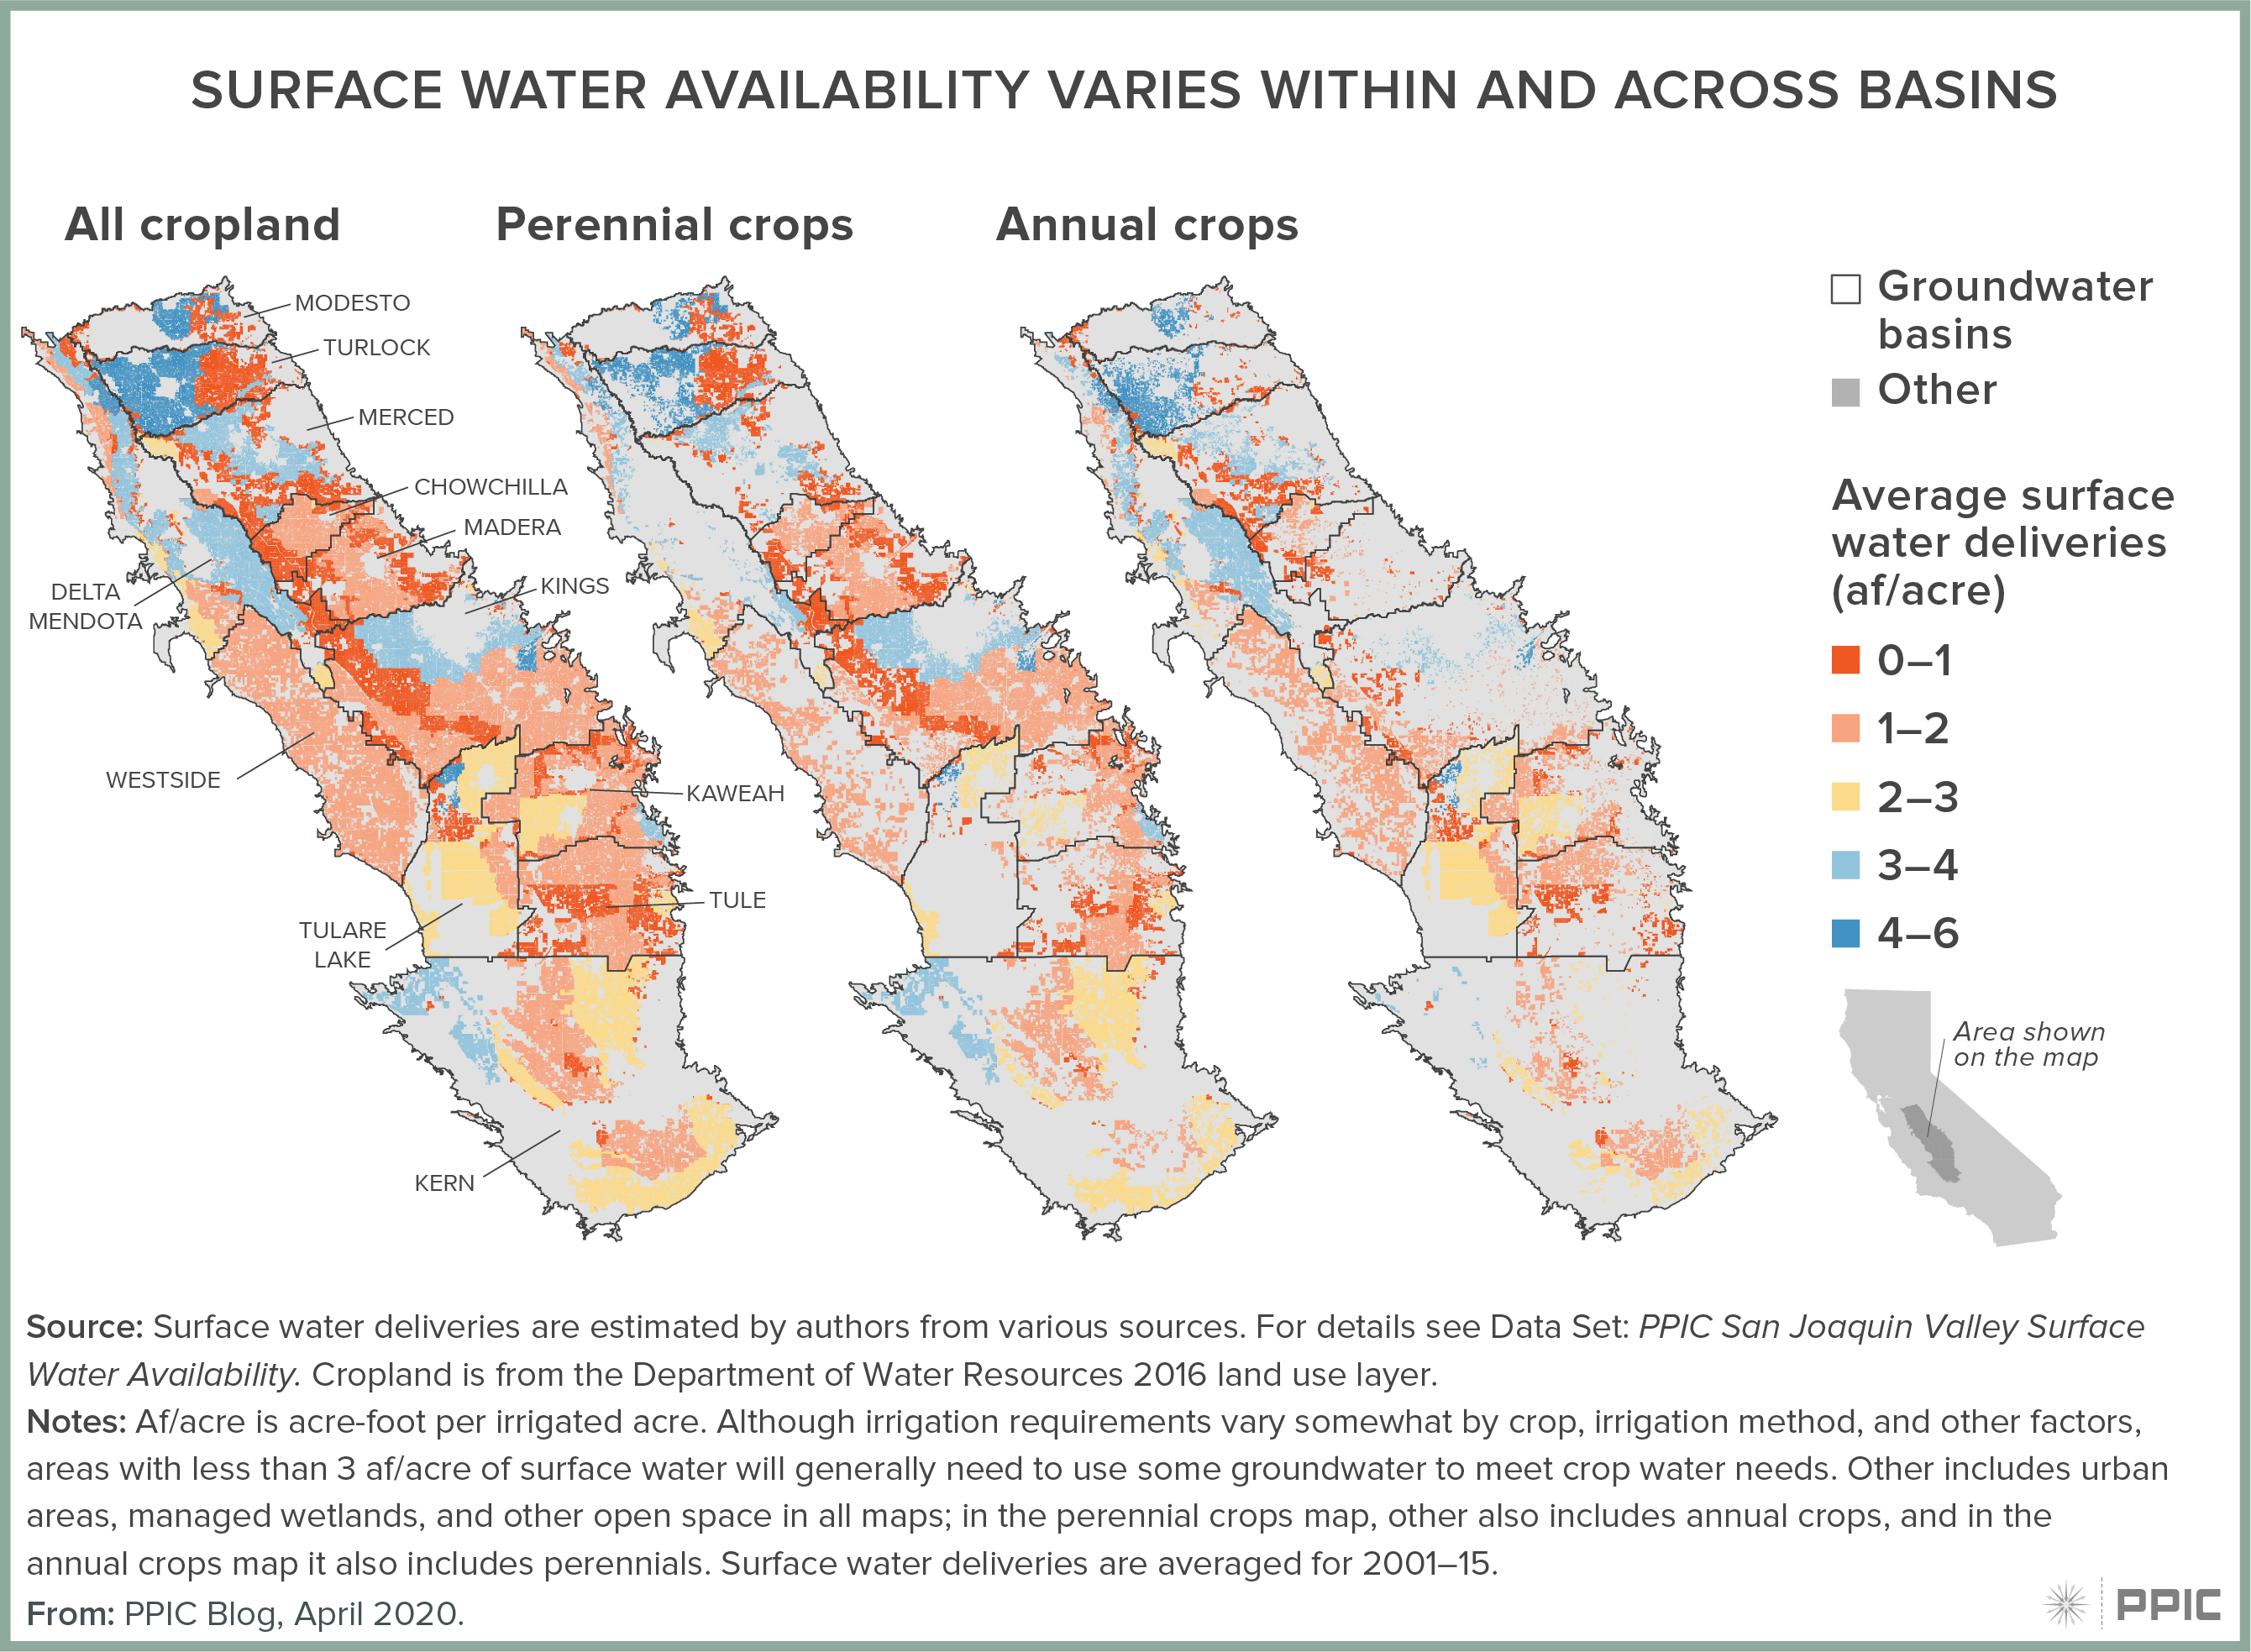 figure - Surface Water Availability Varies Within and Across Basins